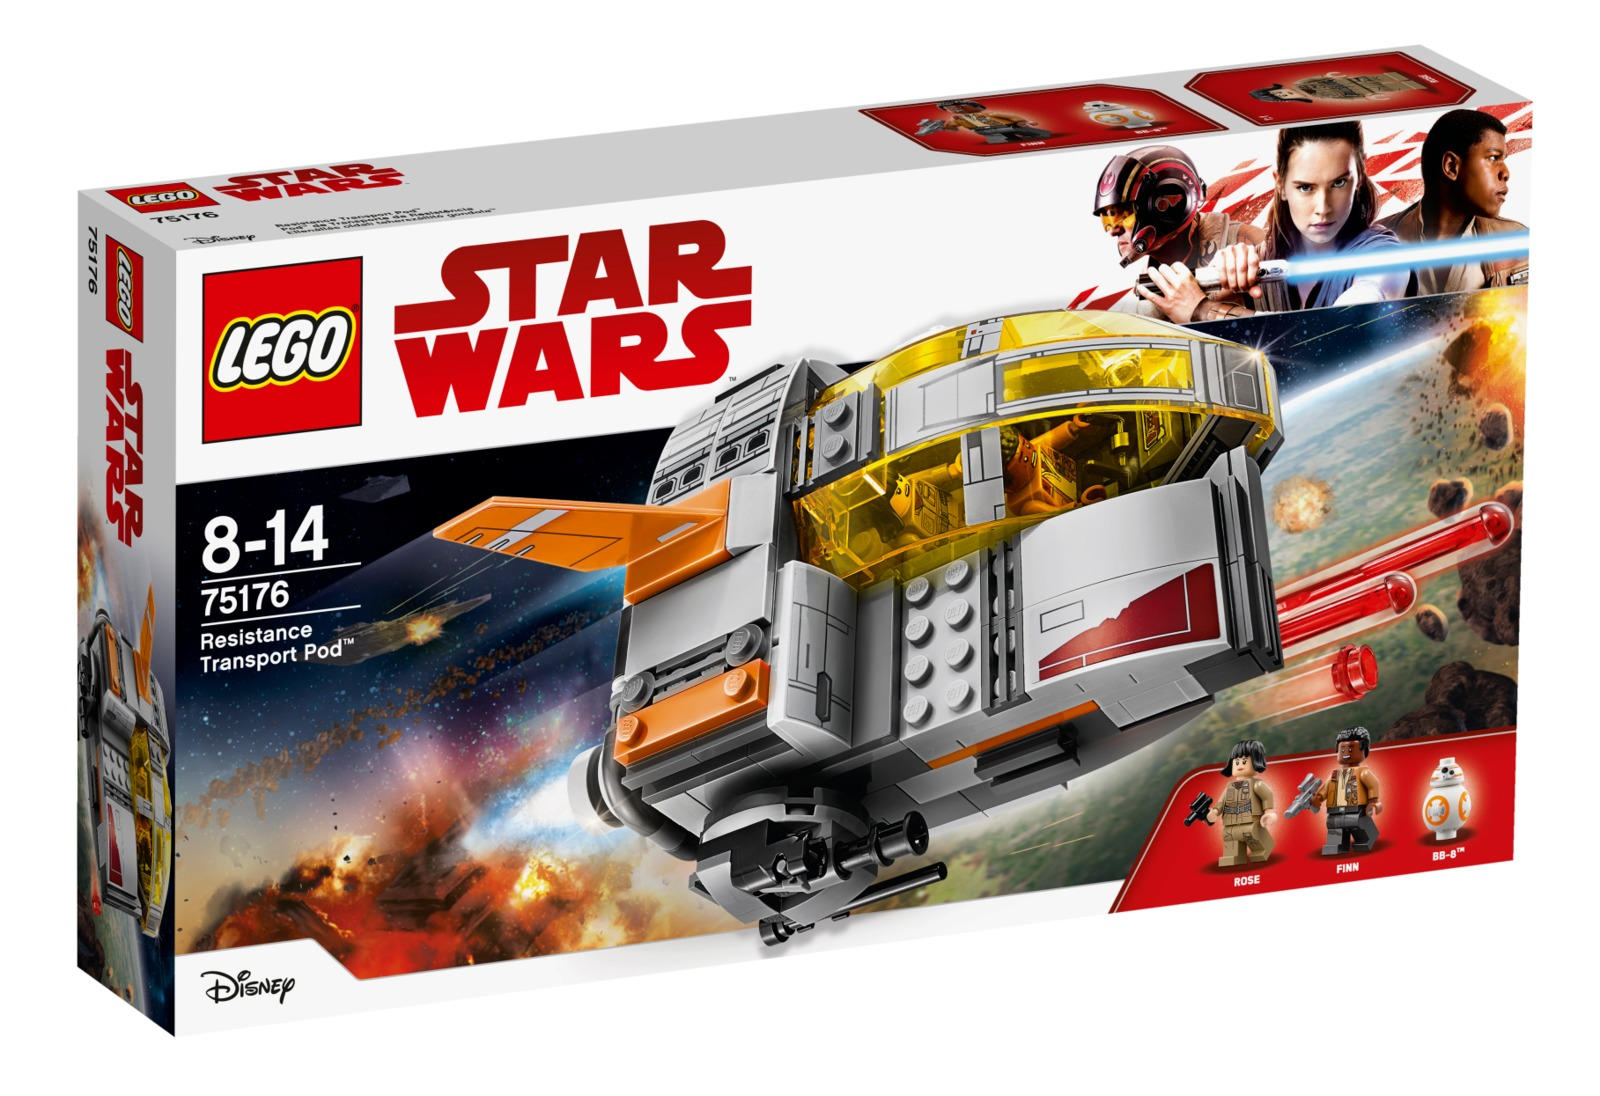 LEGO Star Wars - Resistance Transport Pod (75176) image